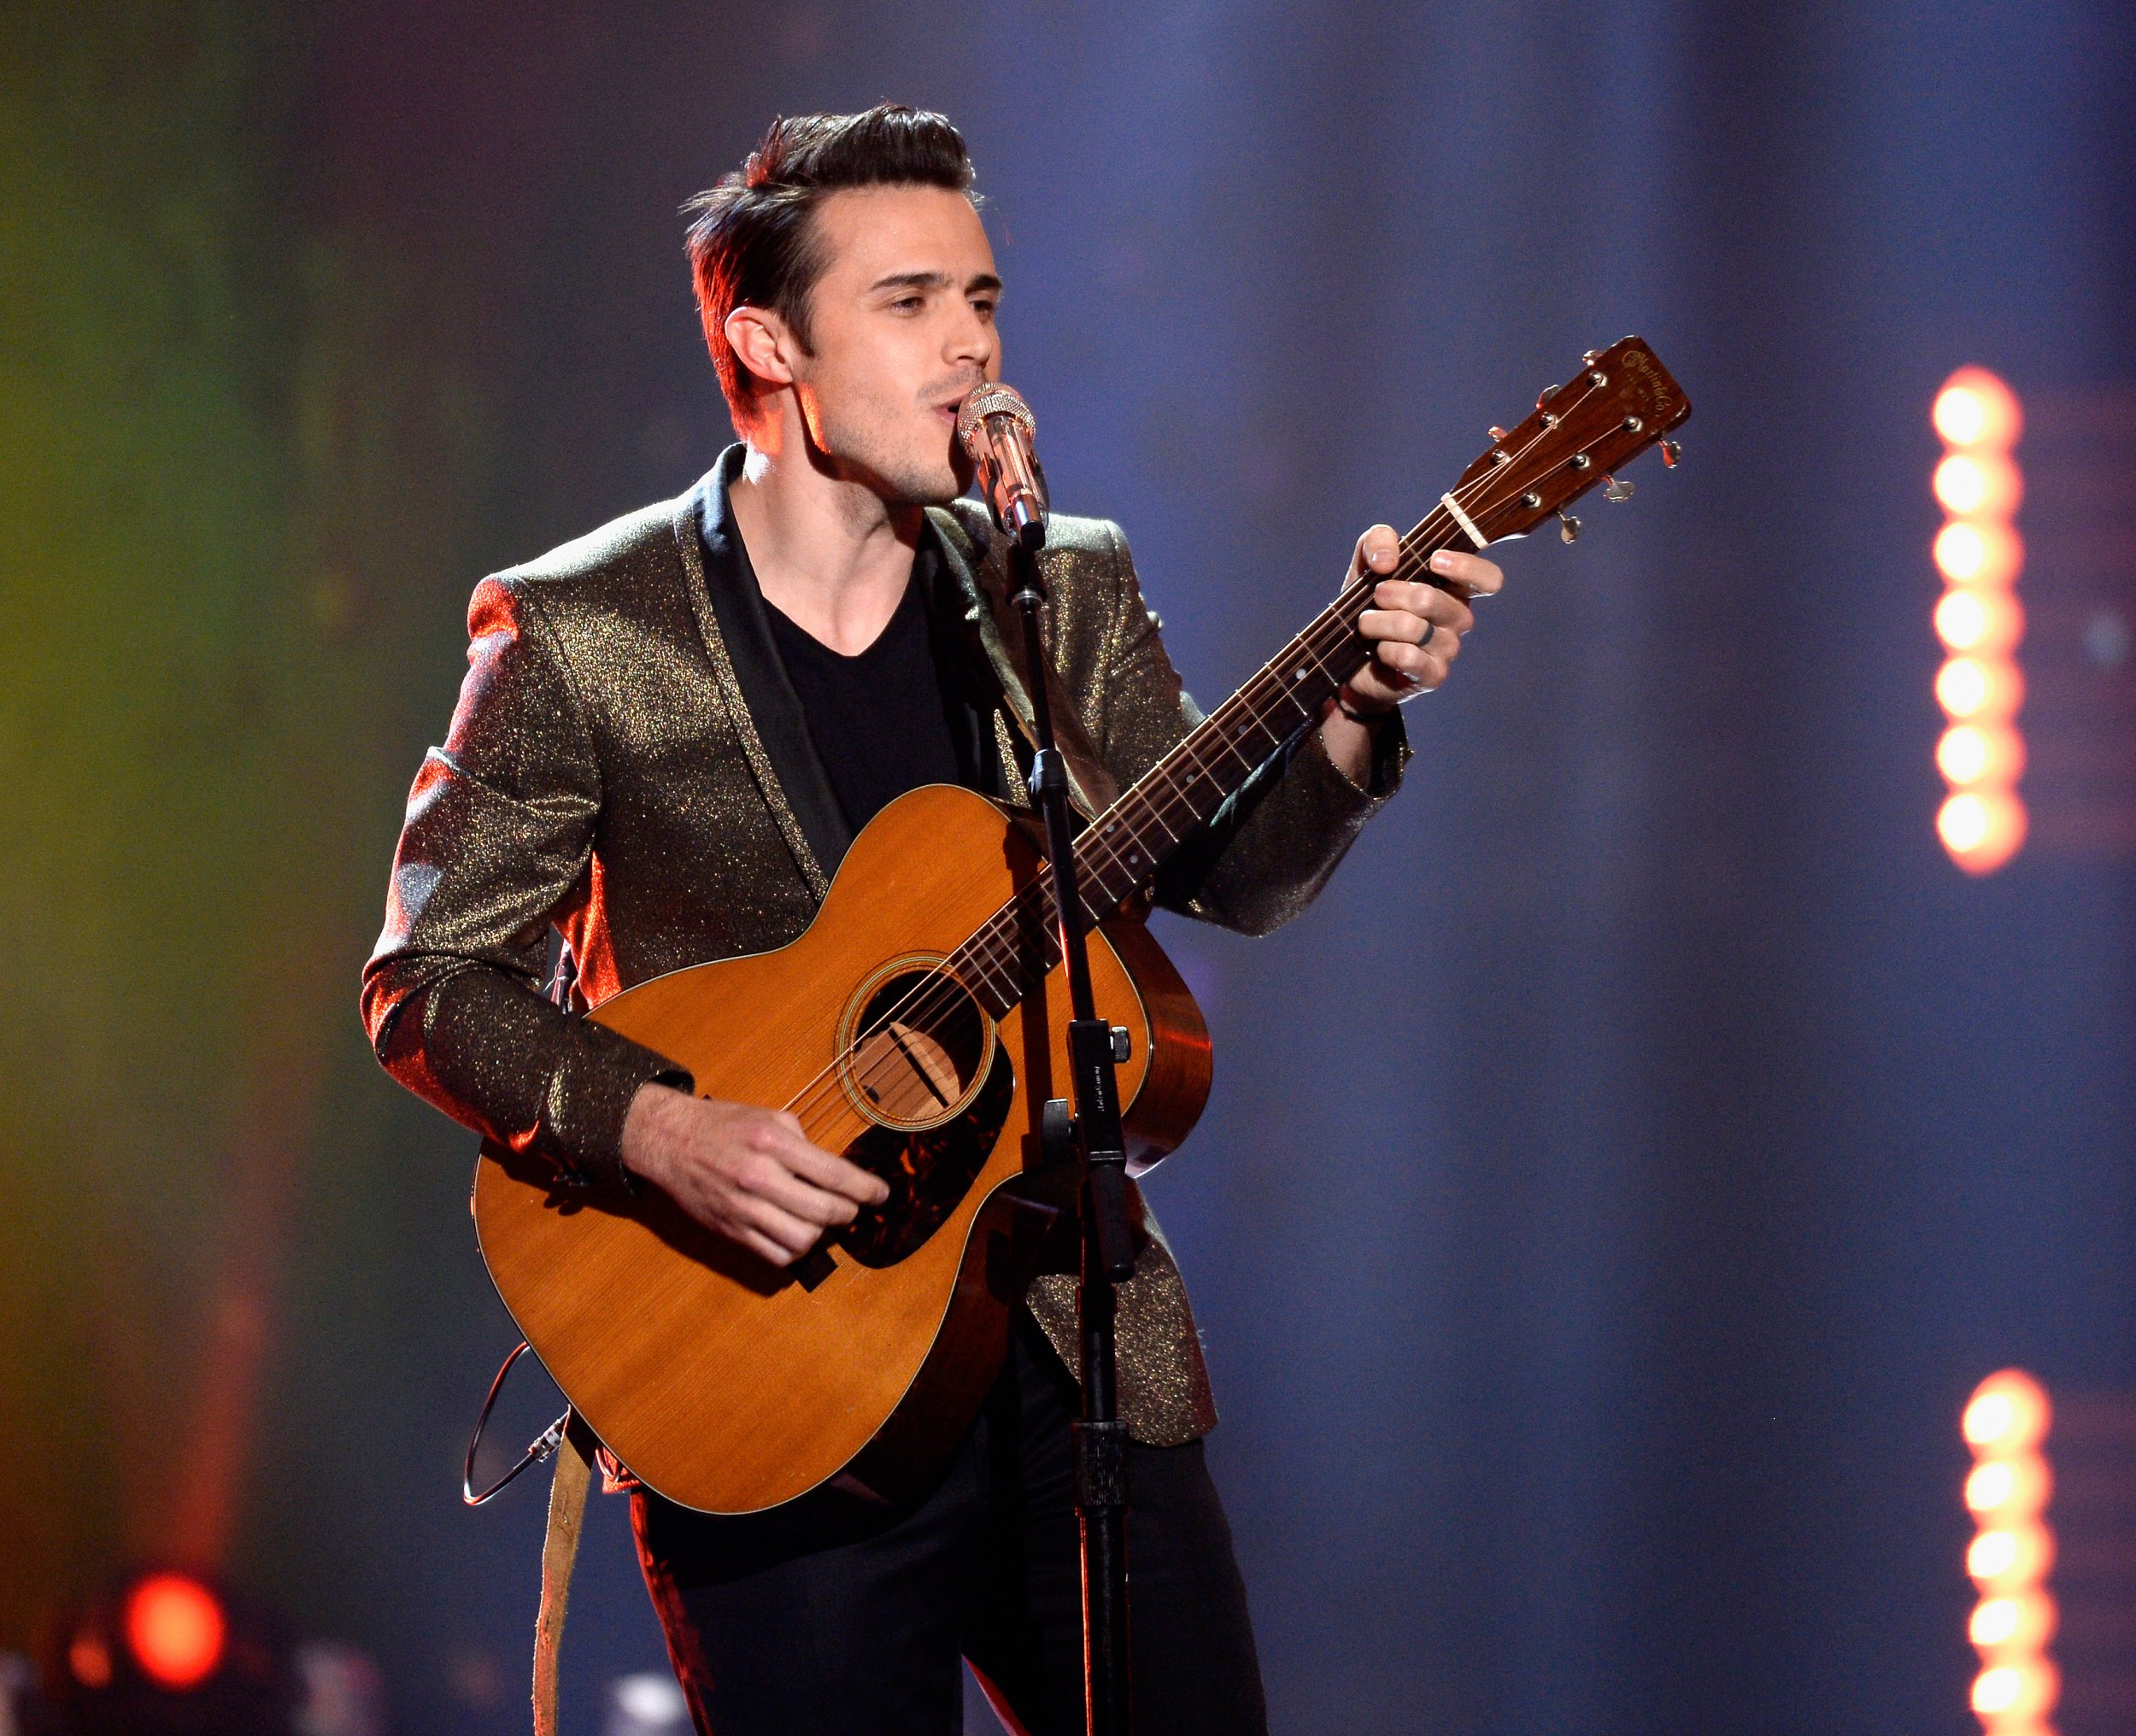 Where Are Previous 'American Idol' Winners Now? – Kris Allen